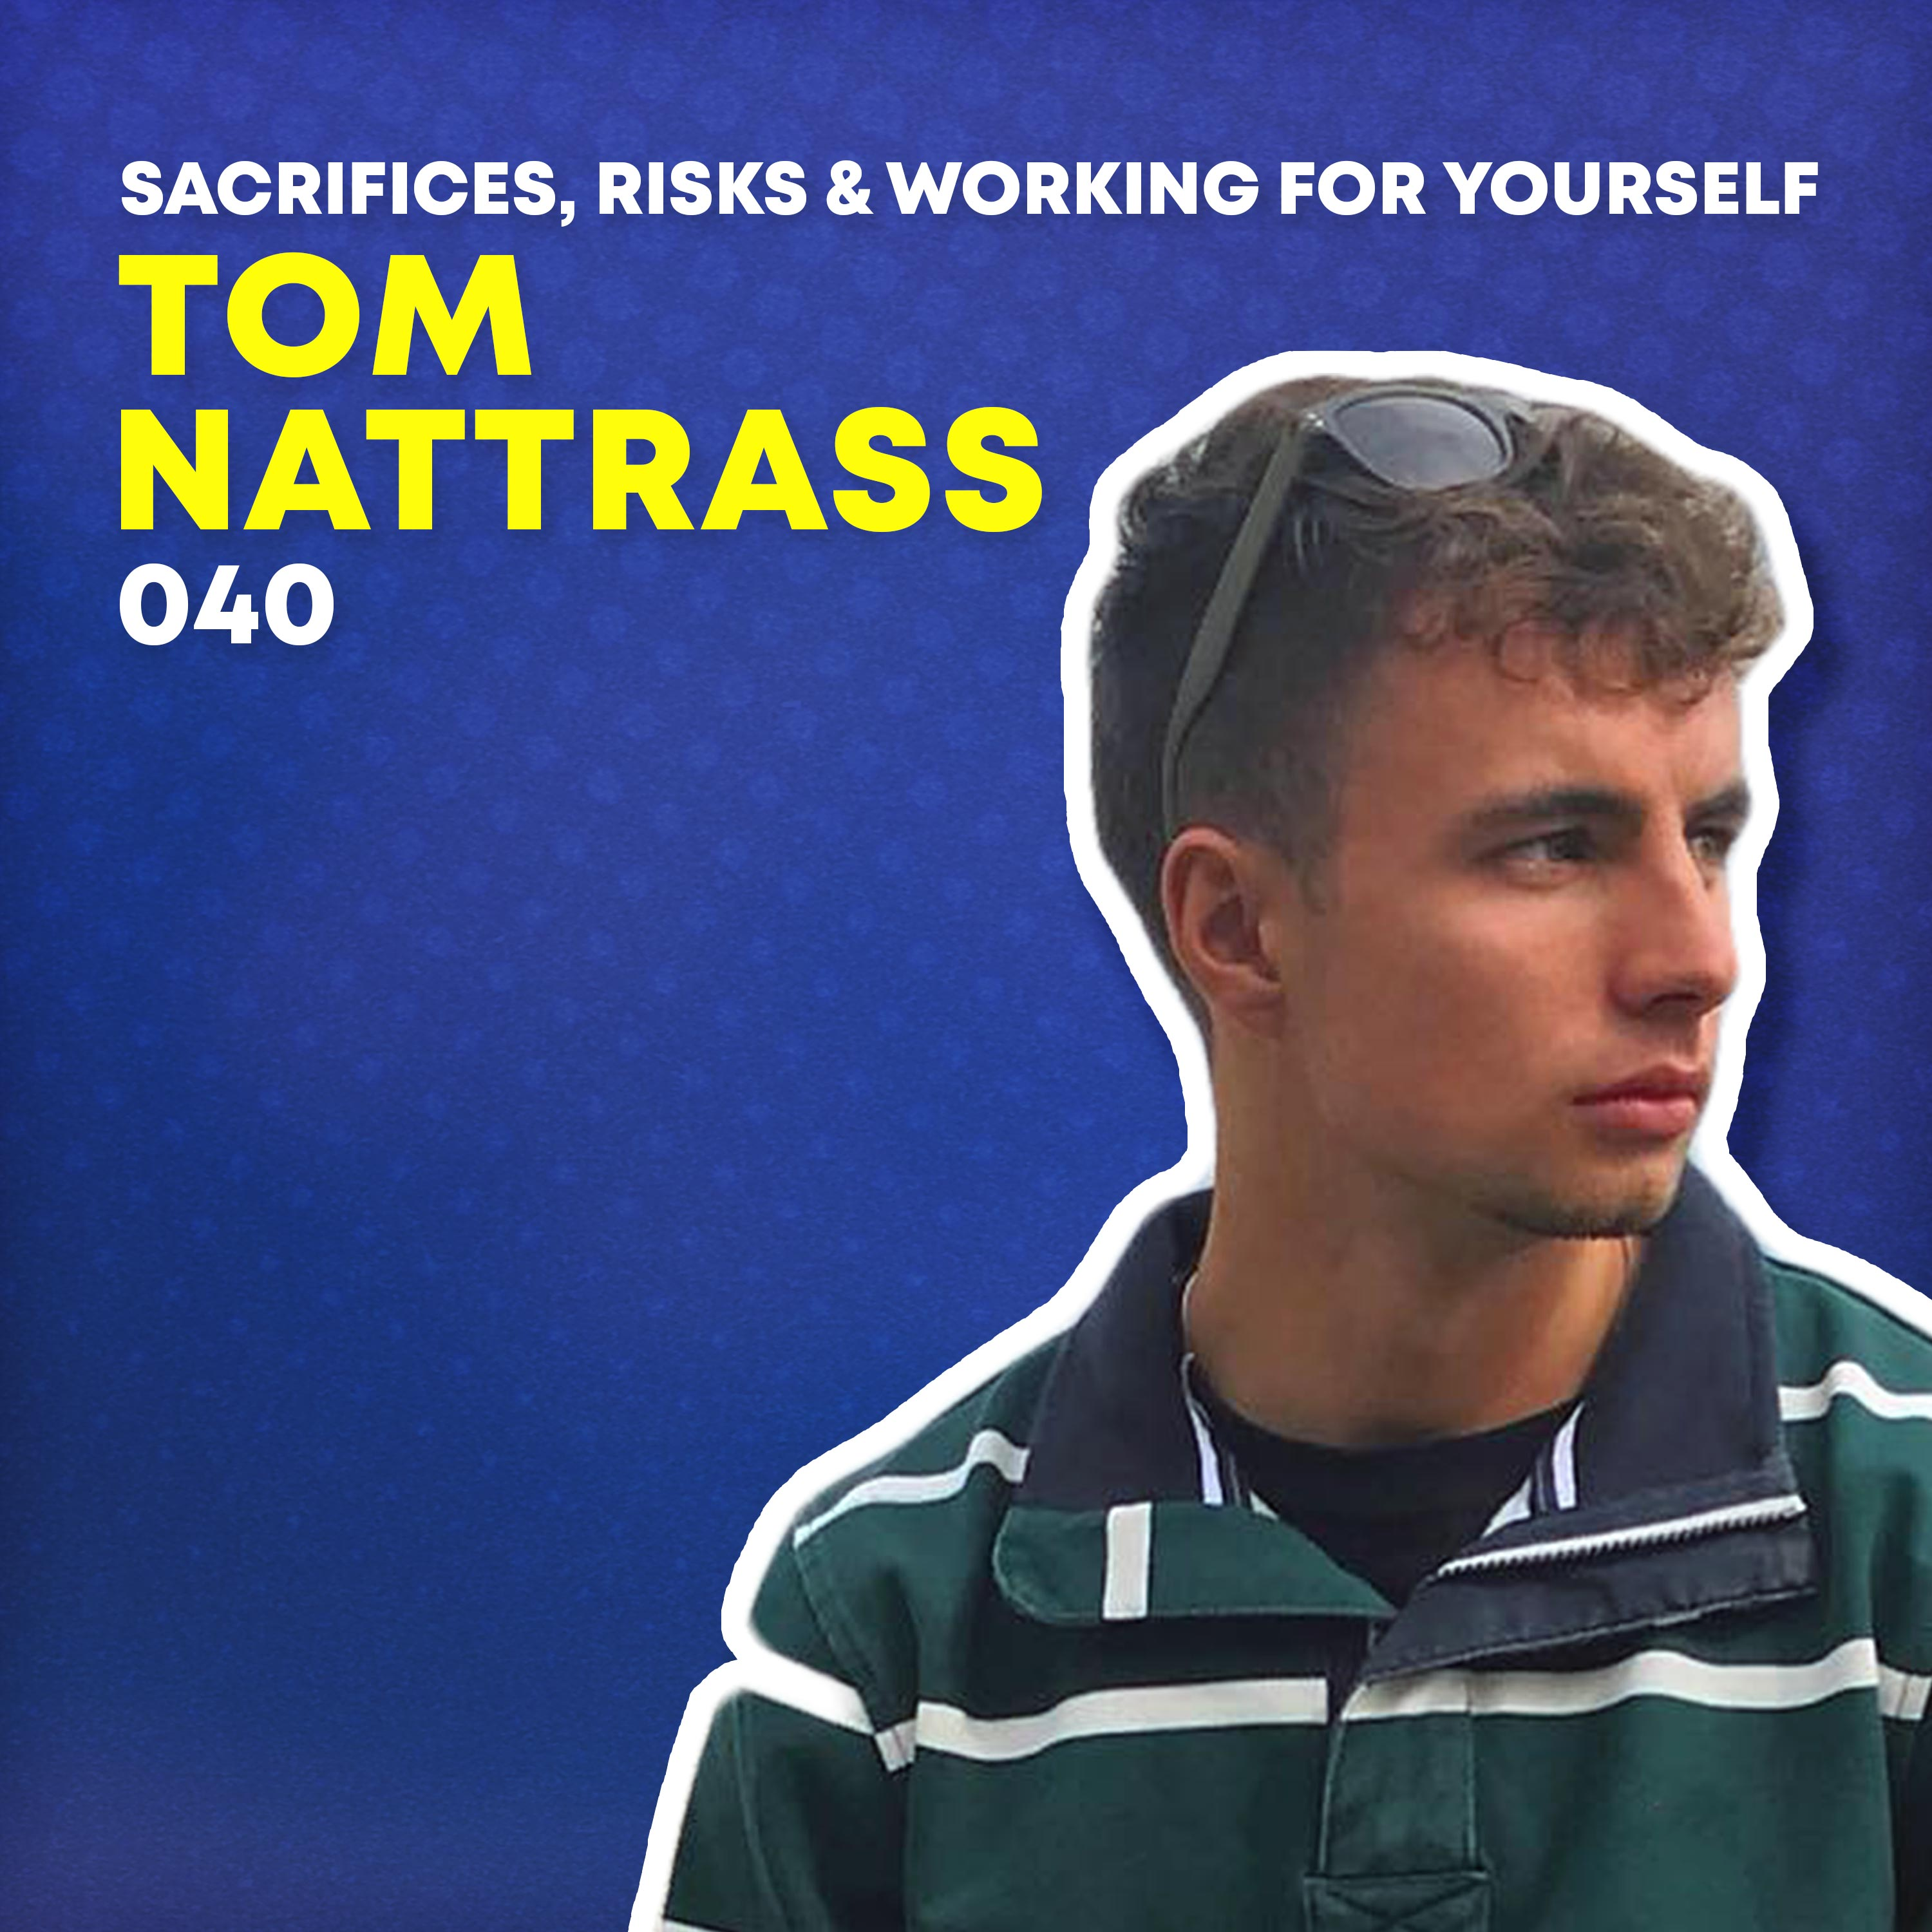 040 - Sacrifices, Risks & Working for Yourself